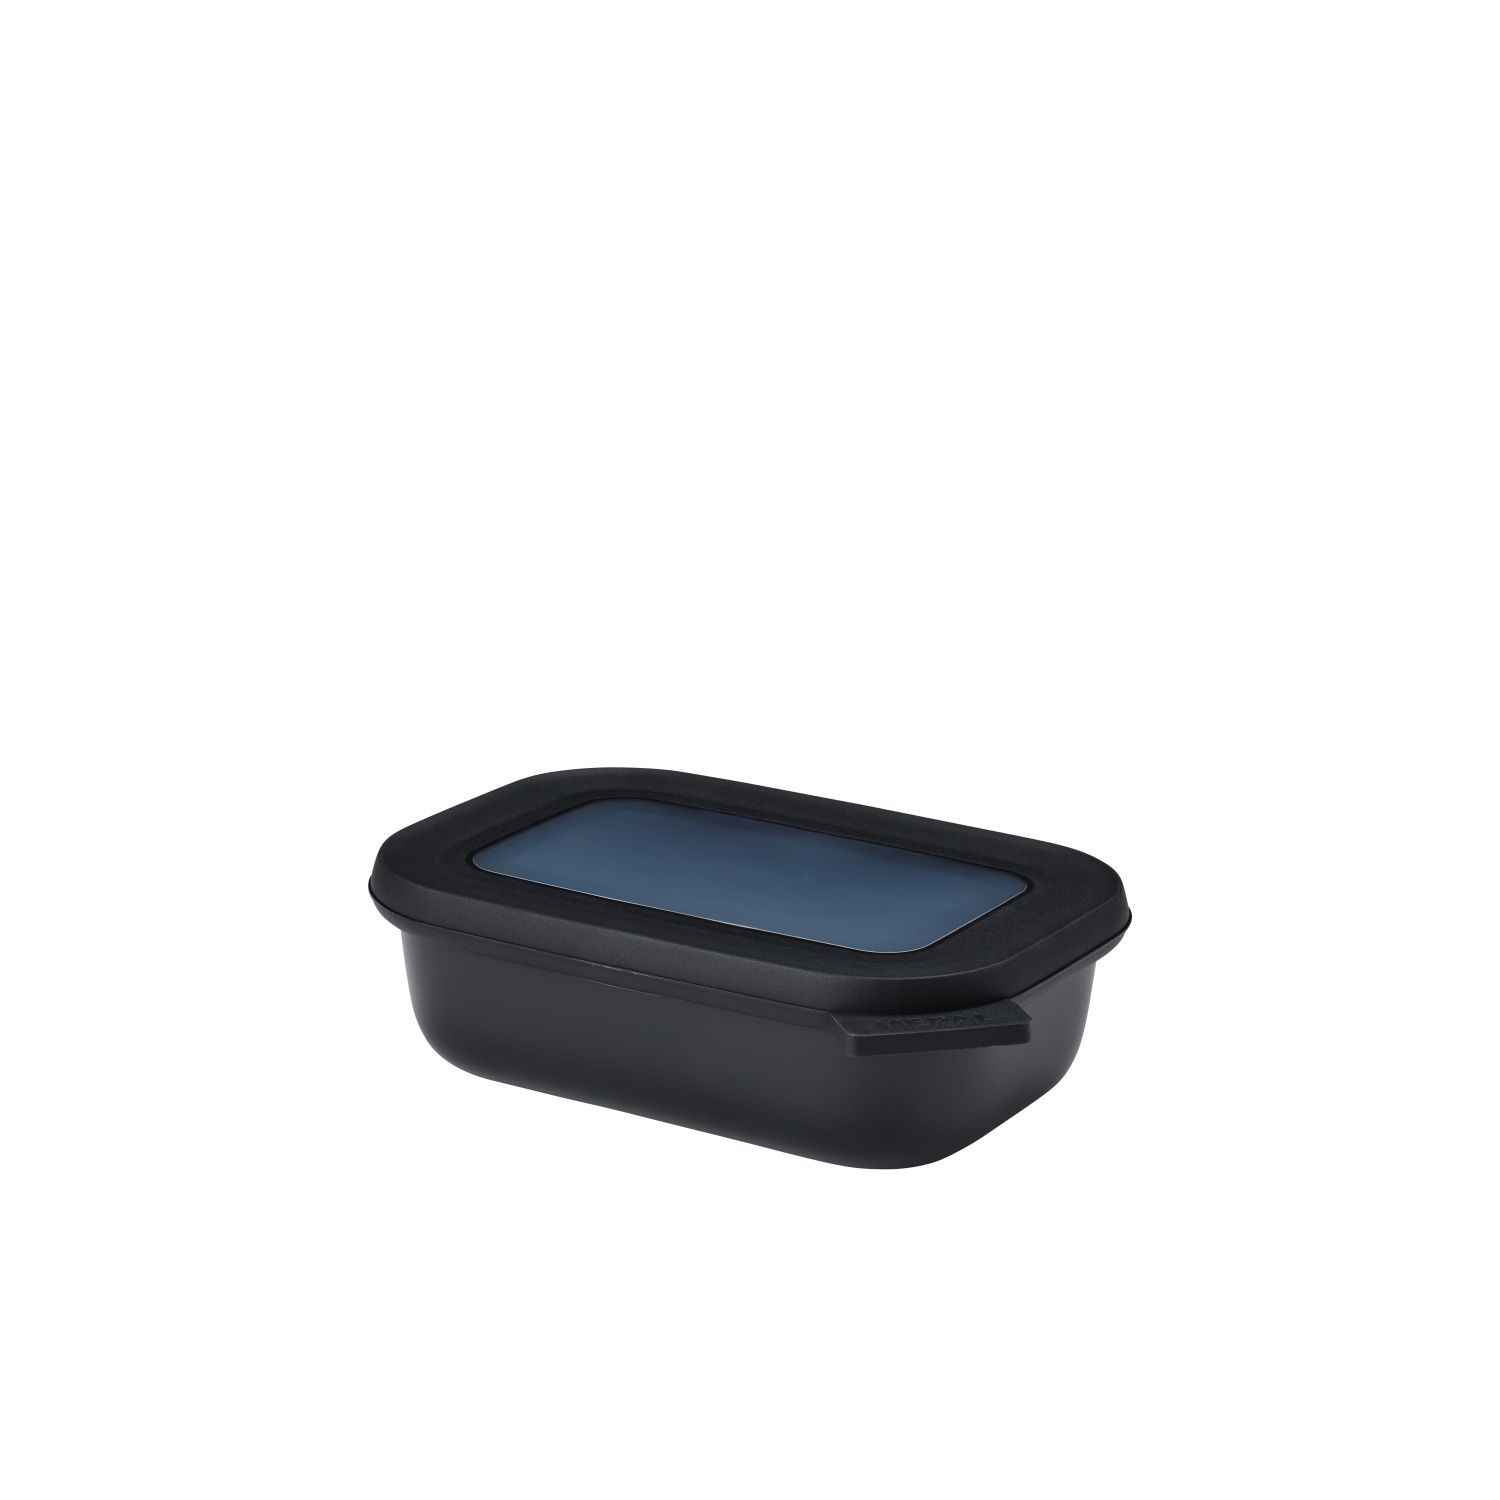 bote de cocina Cirqula rectangular nordic black 500 ml